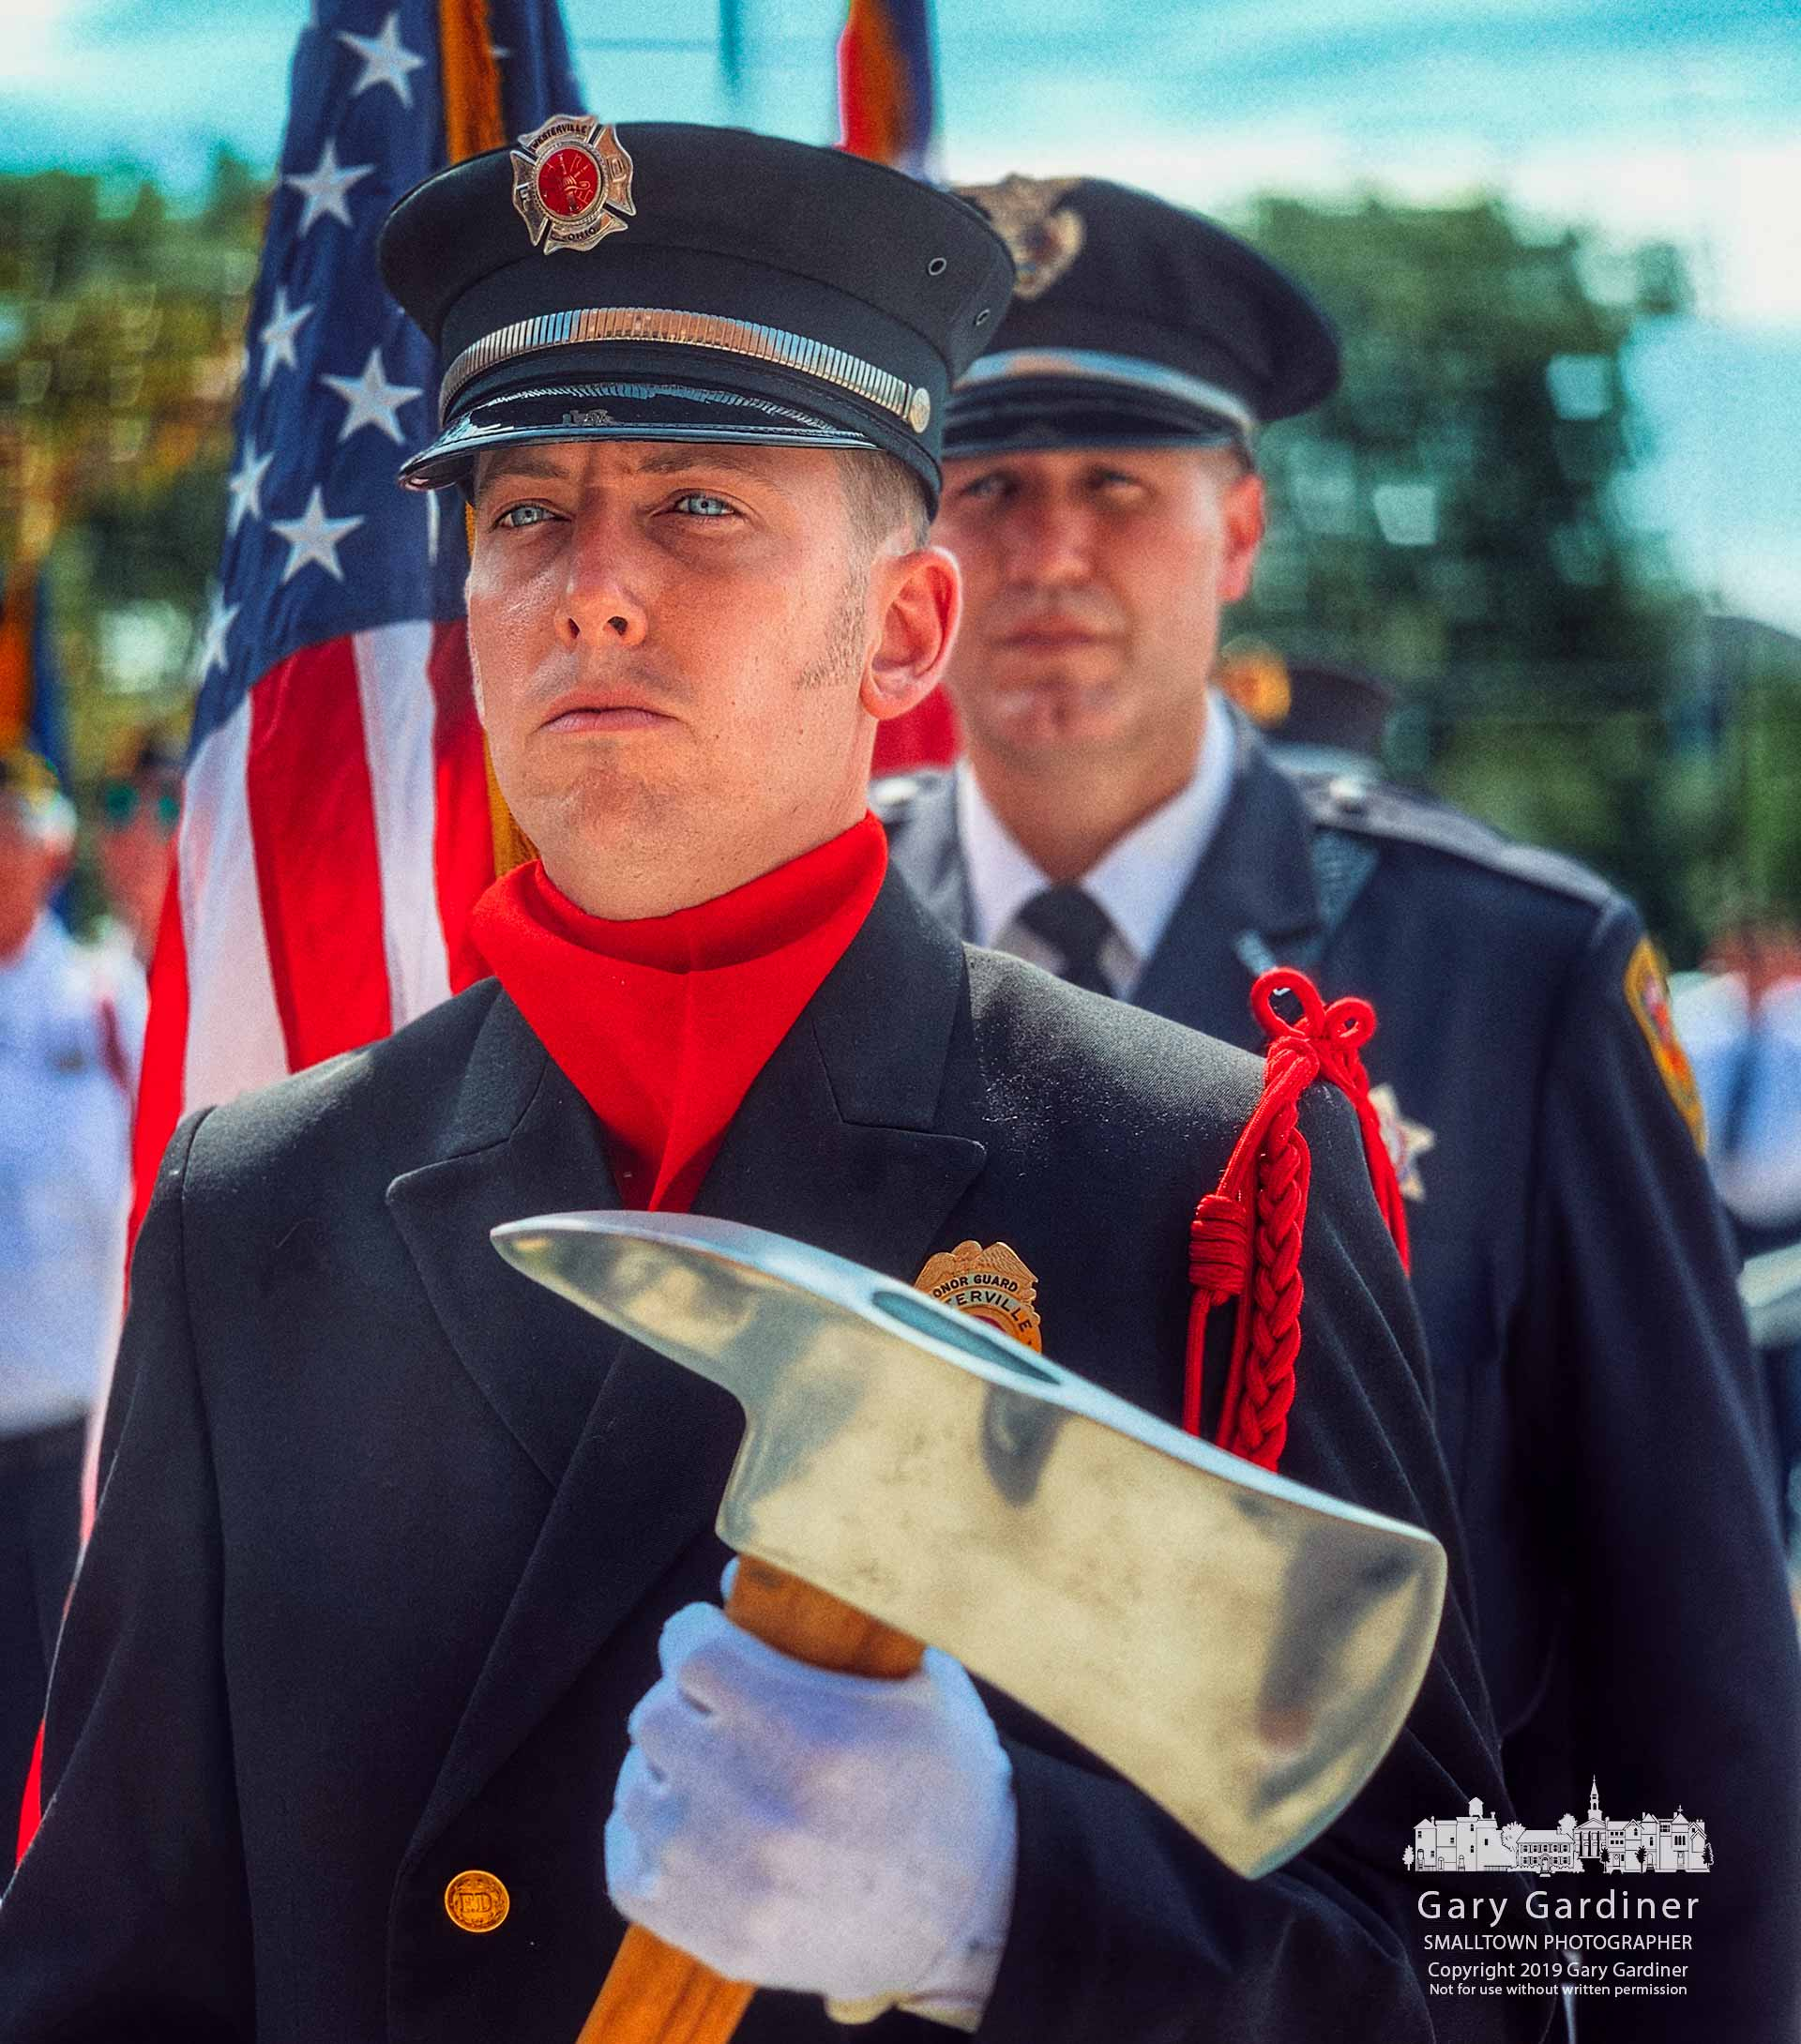 The Westerville Fire Department Honor Guard stands at the ready before ceremonies Wednesday marking the 18th anniversary of the terrorist attacks in New York and Washington. My Final Photo for Sept. 11, 2019.